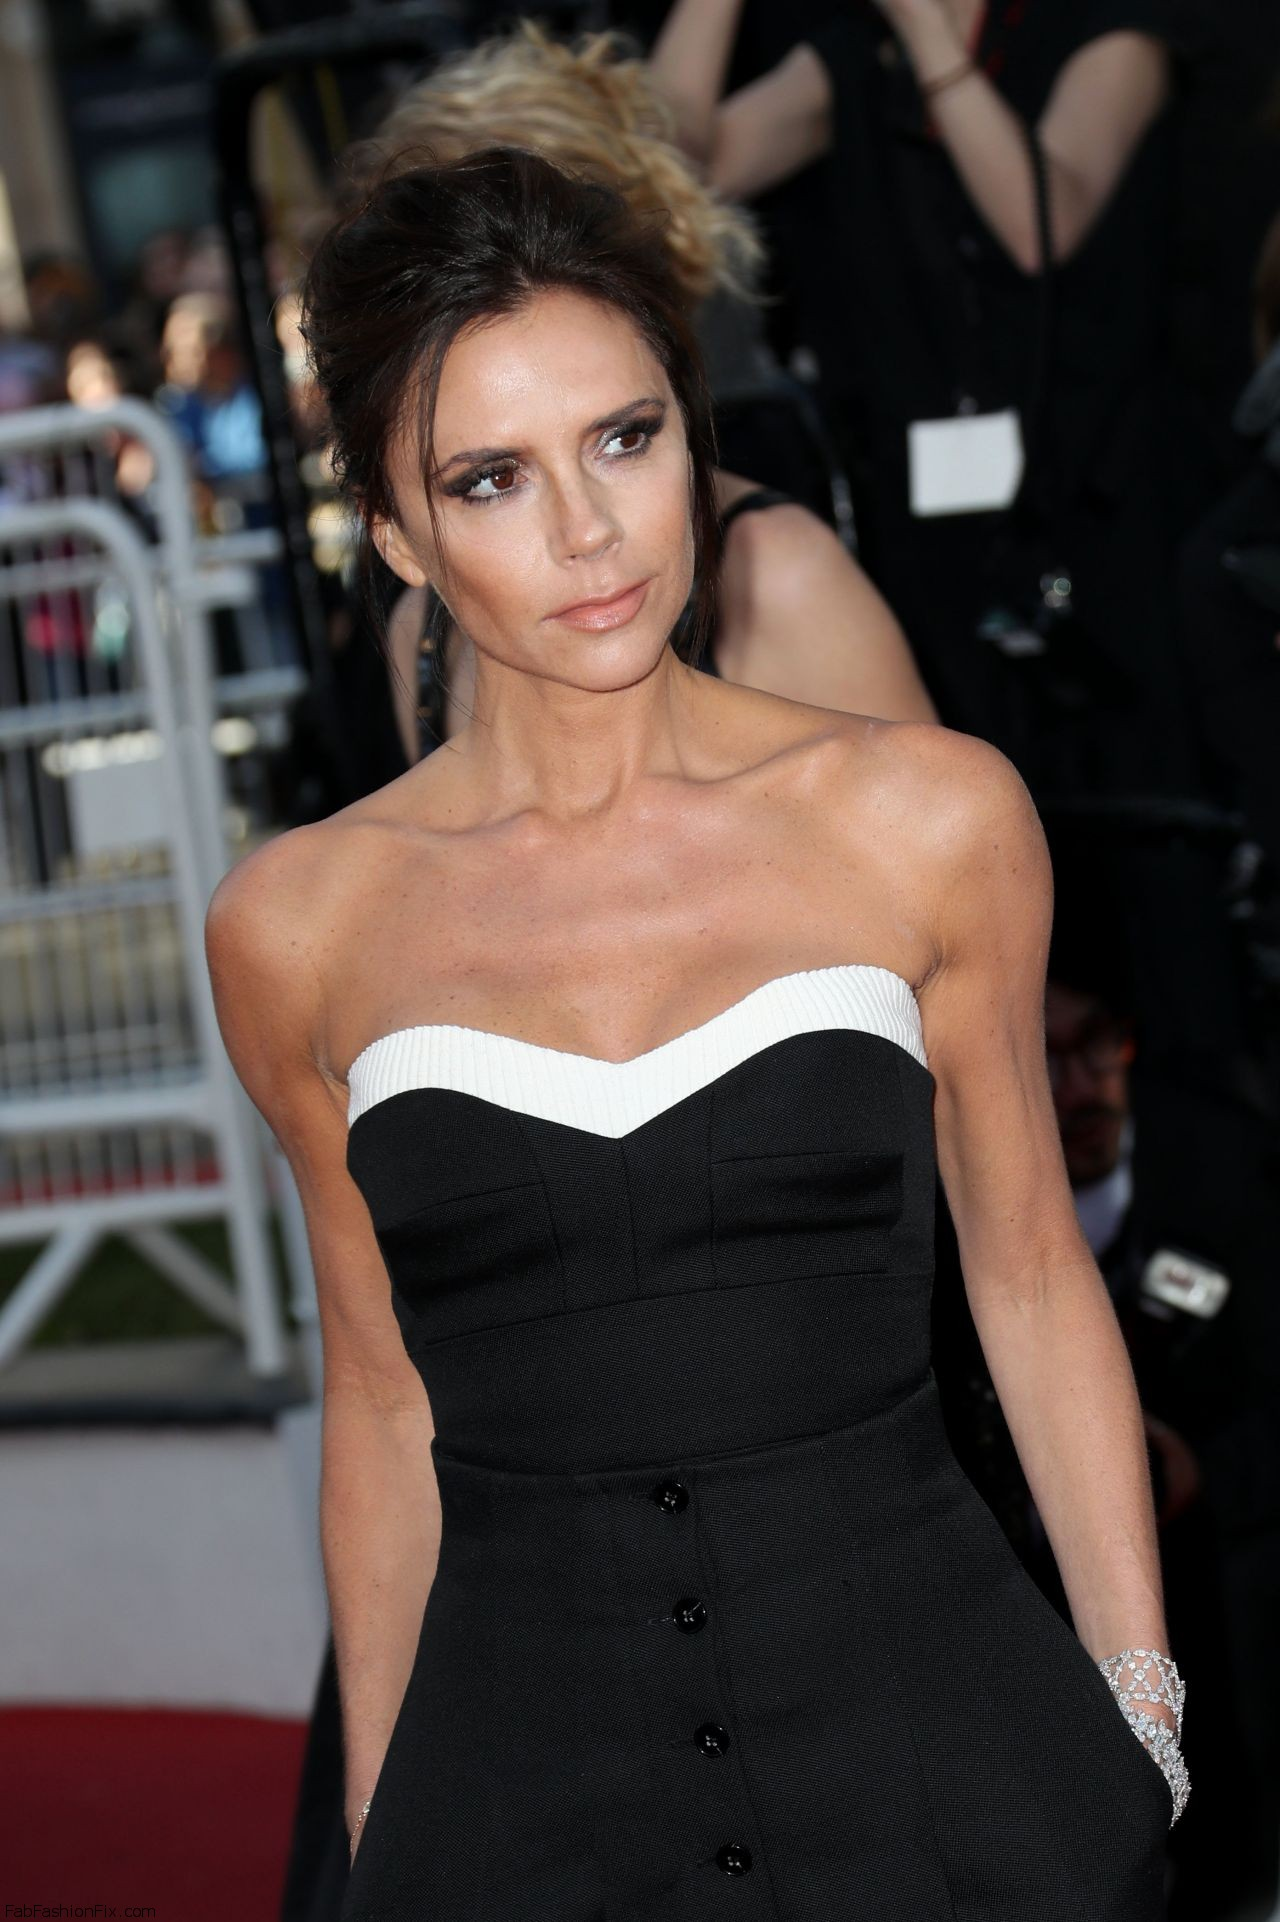 victoria-beckham-cafe-society-premiere-and-the-opening-night-gala-2016-cannes-film-festival-8